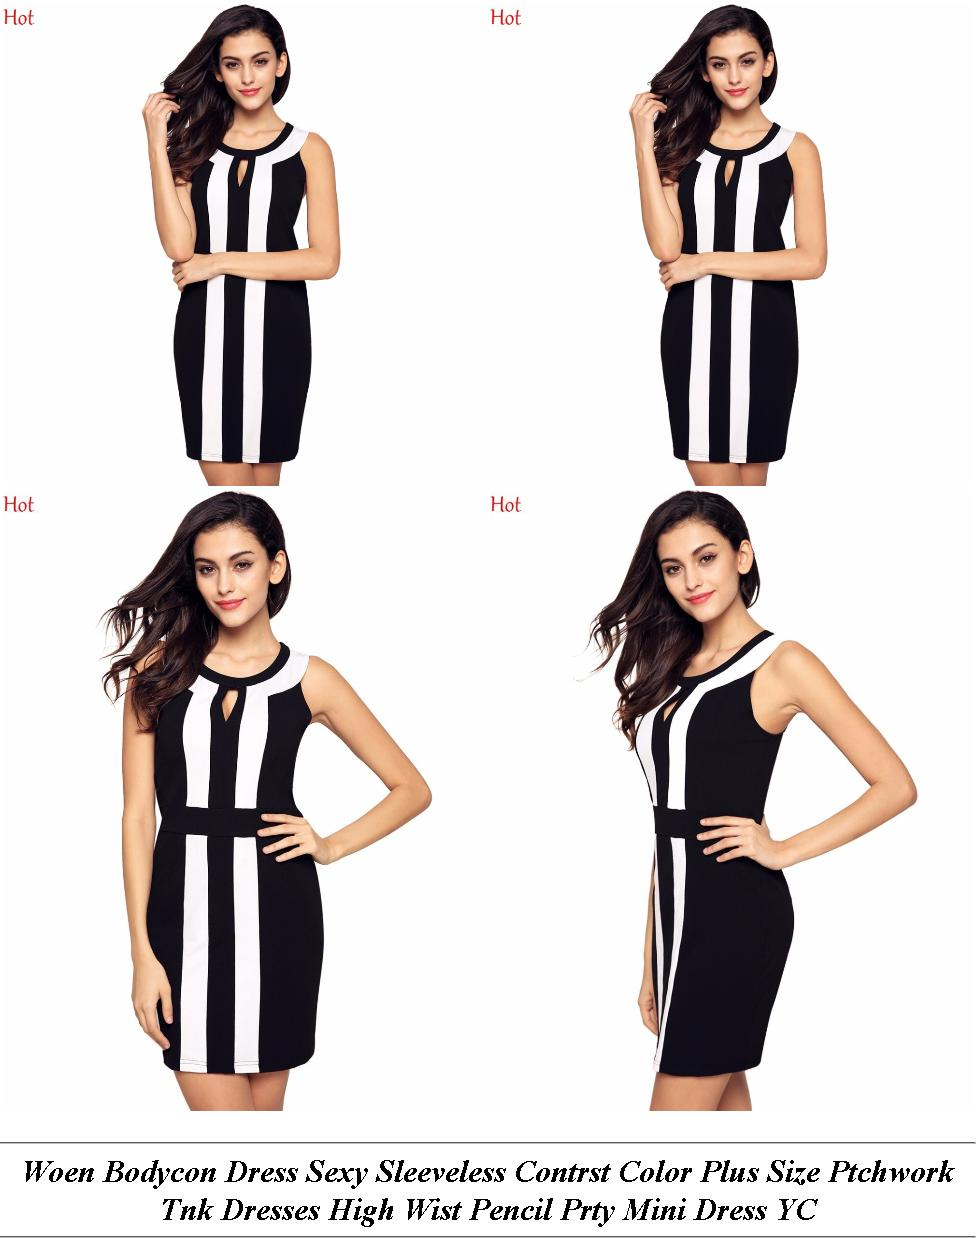 Cheap Prom Dresses Online India - When Are Est Clothing Sales - Toddler Girl Lack Dress Sandals